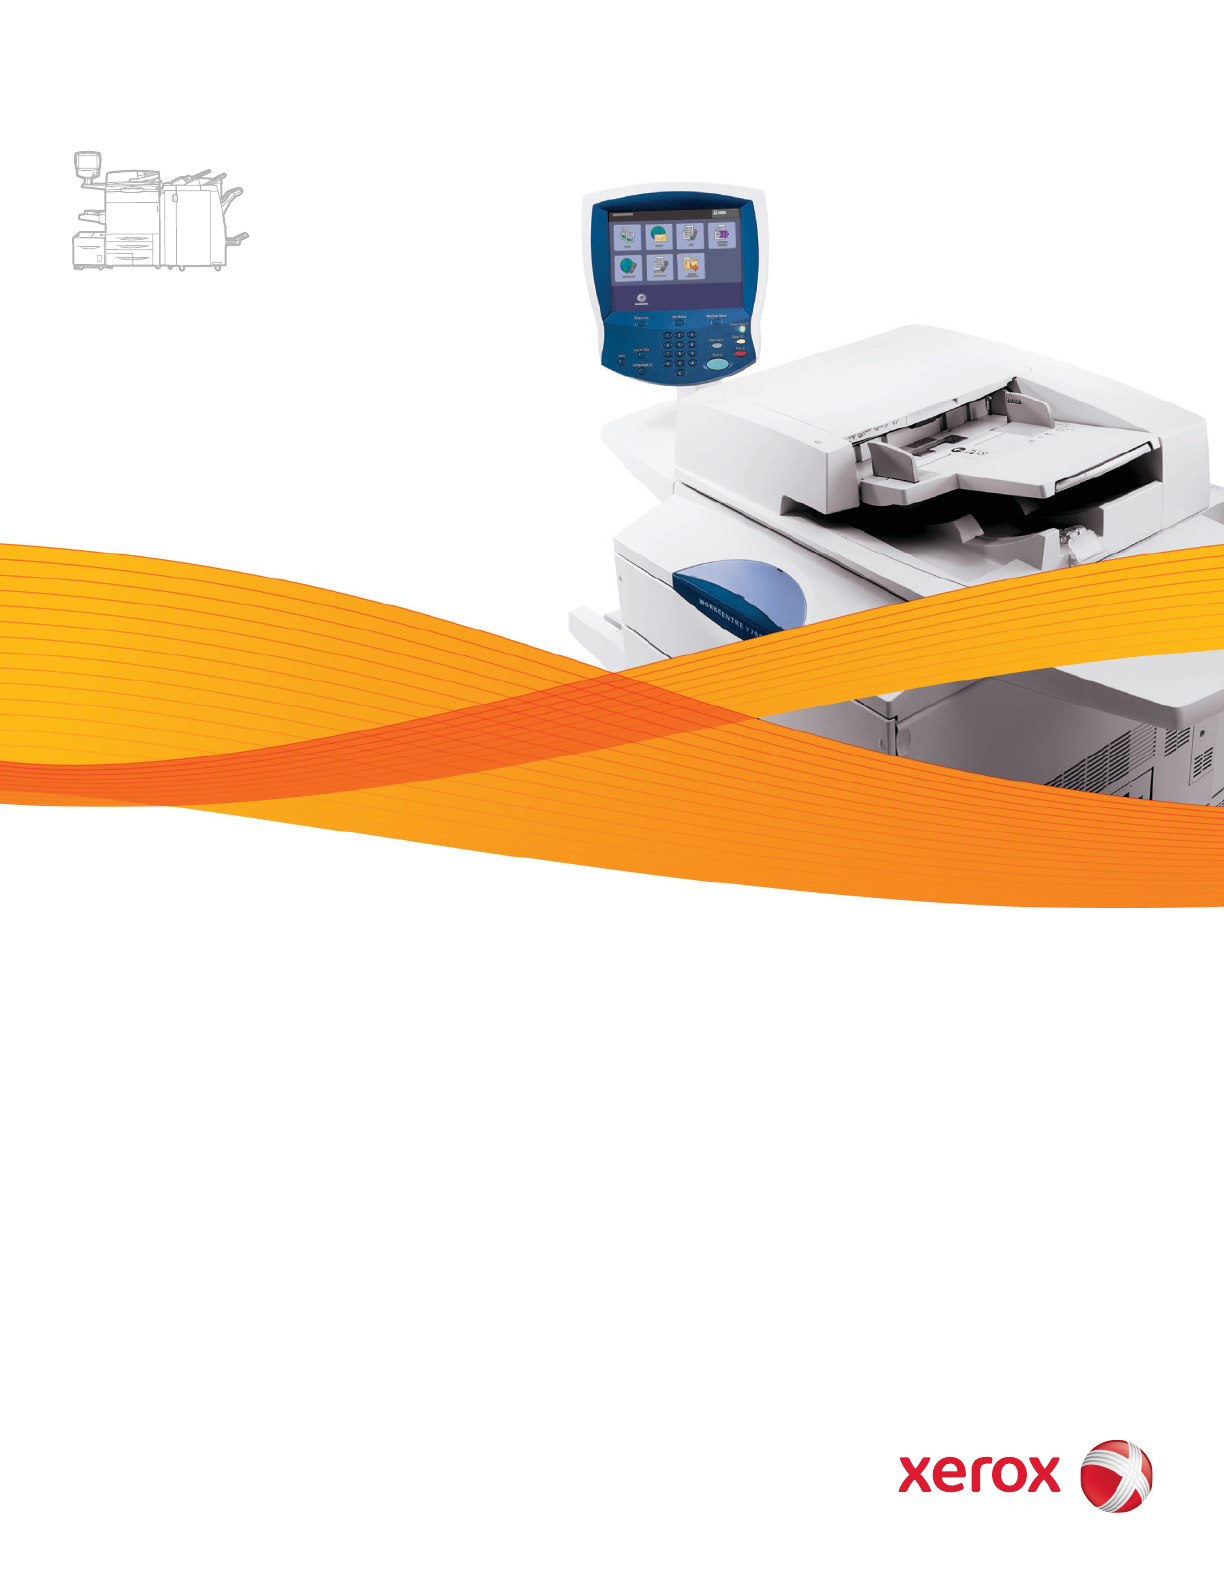 Xerox Workcentre 7775 Users Manual ManualsLib Makes It Easy To Find